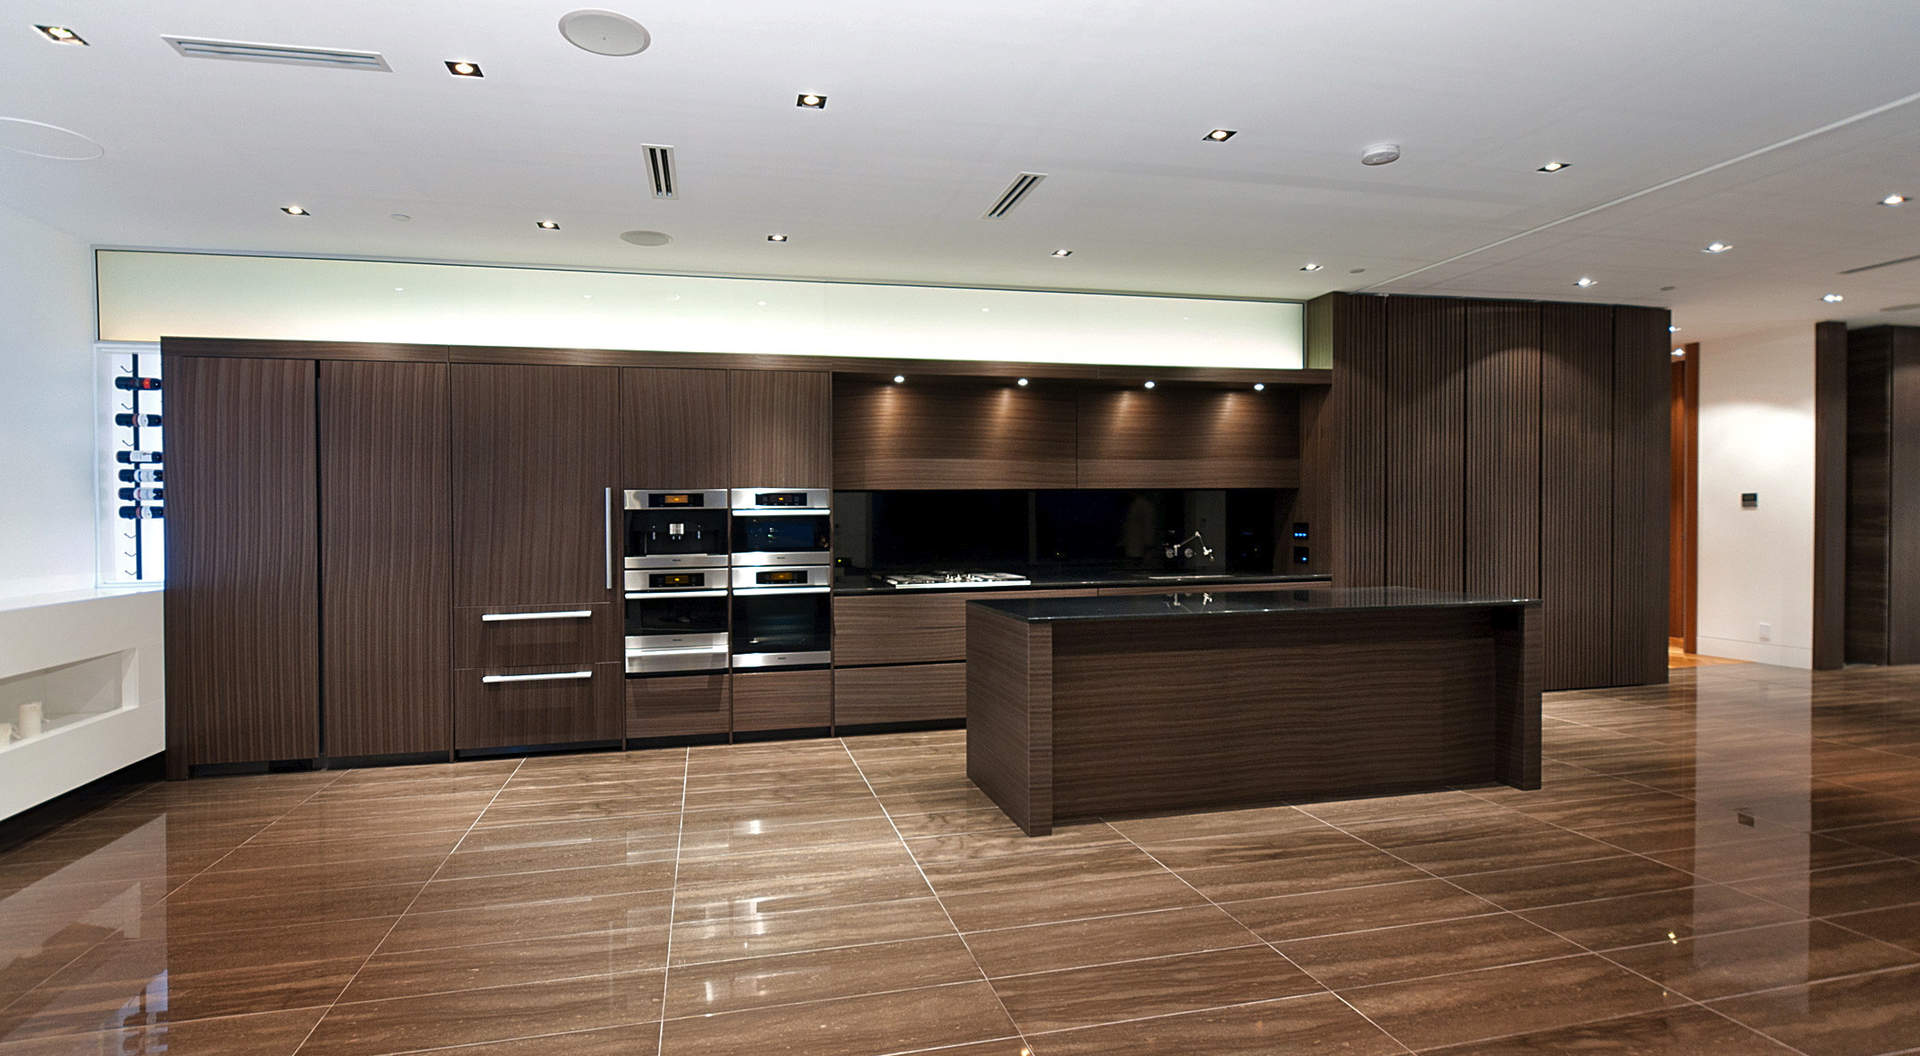 State-of-the-Art Kitchen with Ample Storage